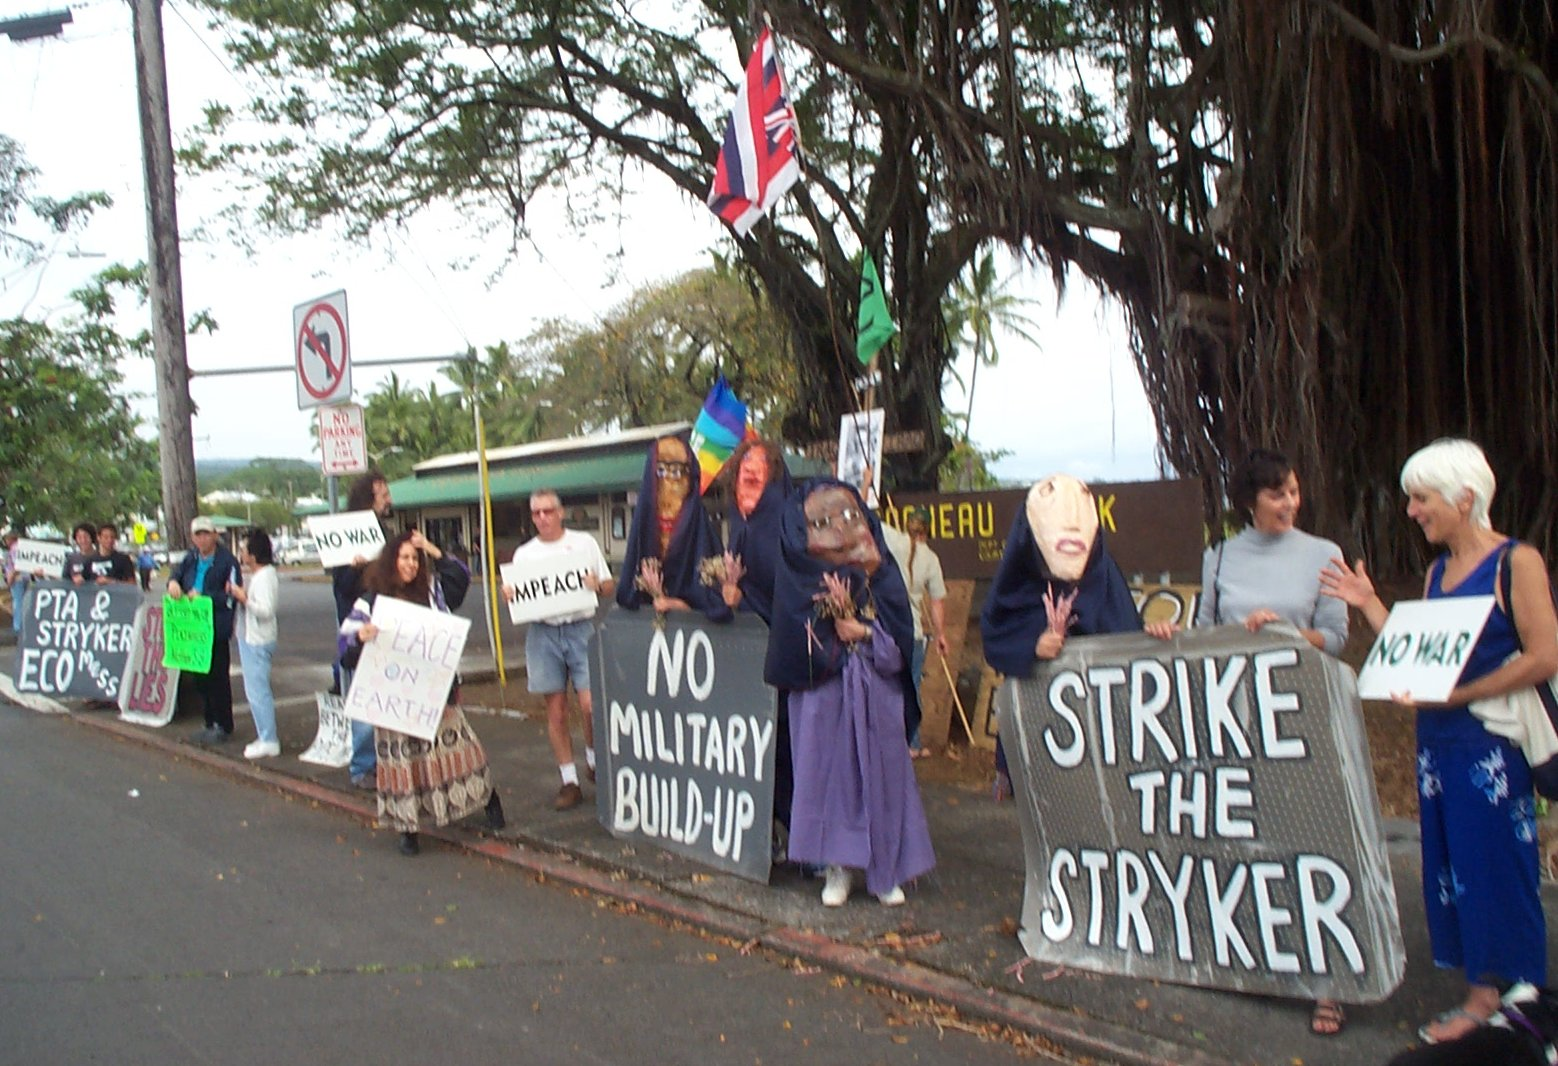 03-20-04-HI-Hilo-Peace demo-part of line w puppets